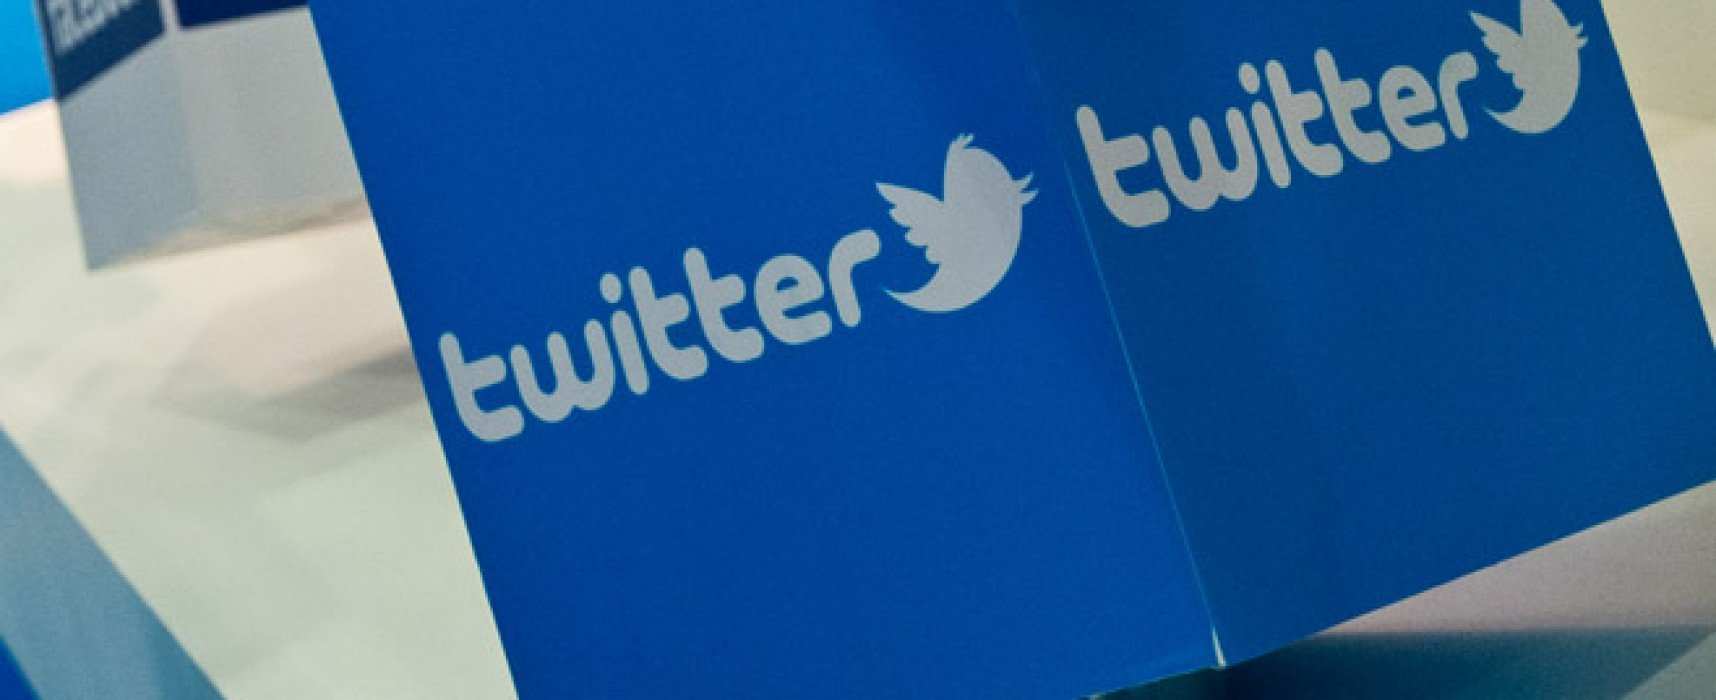 Twitter Says Russia Repeatedly Tried to Erase Tweets by Putin Critics